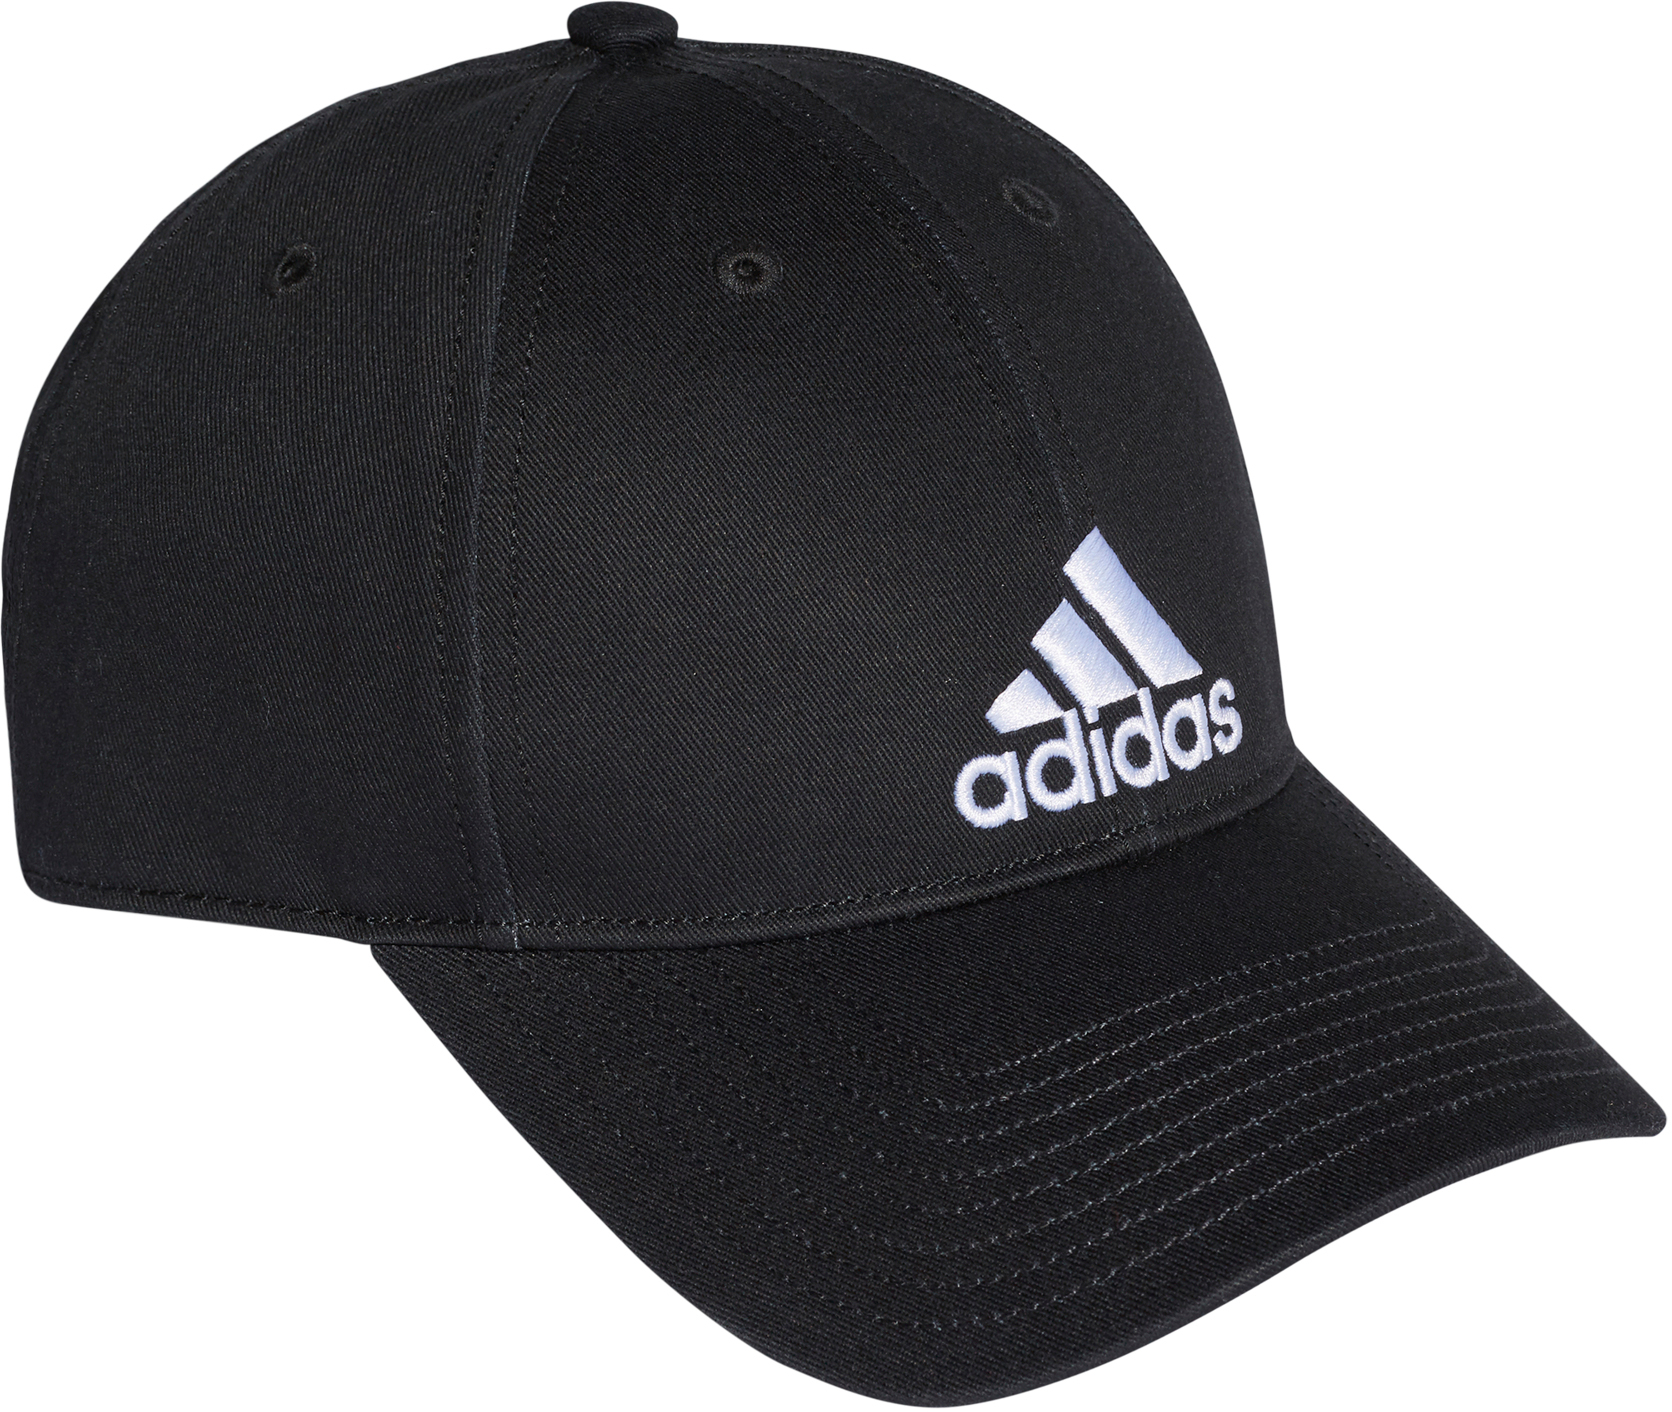 eb72d9cb wiggle.com | adidas Six Panel Cotton Cap | Caps